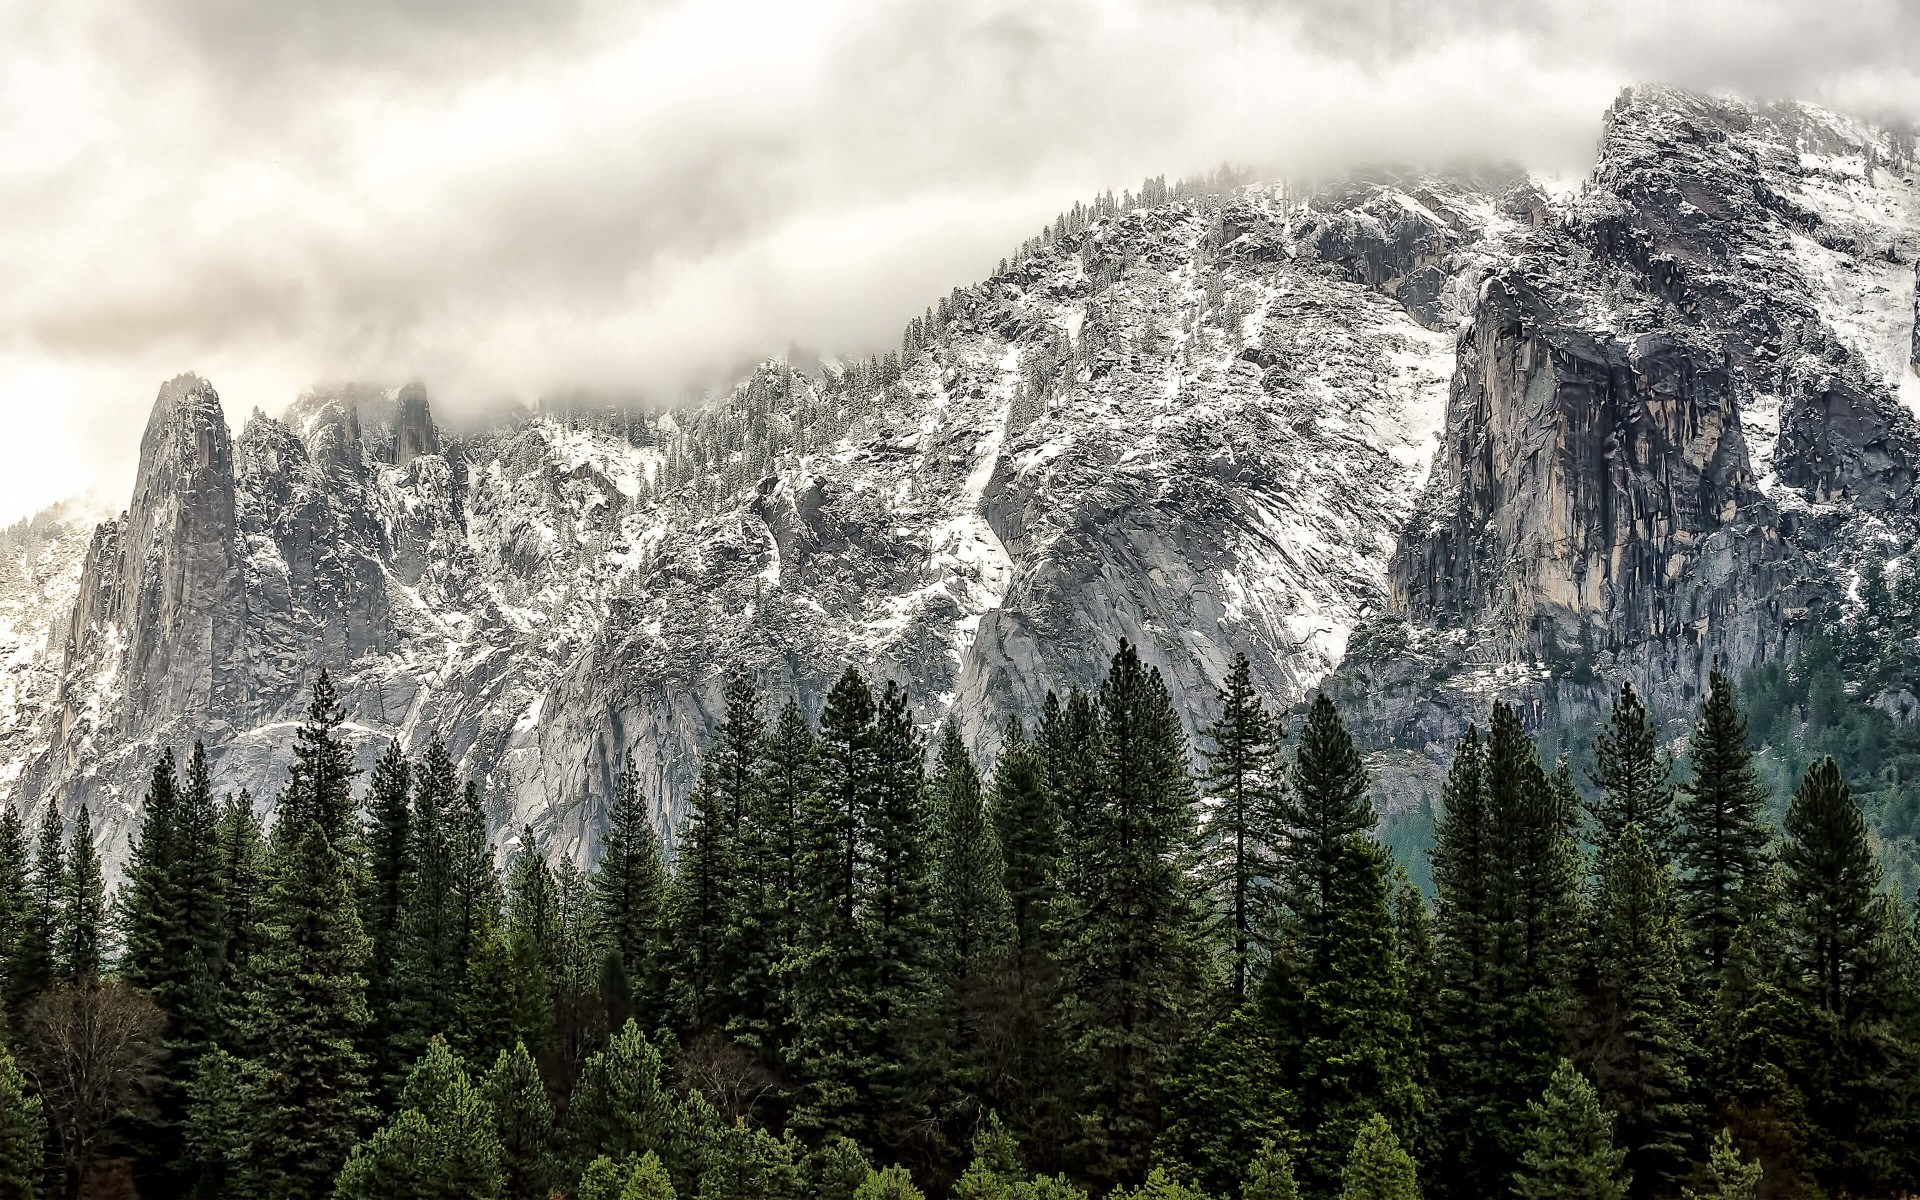 Winter Day at Yosemite National Park Wallpaper for Desktop 1920x1200